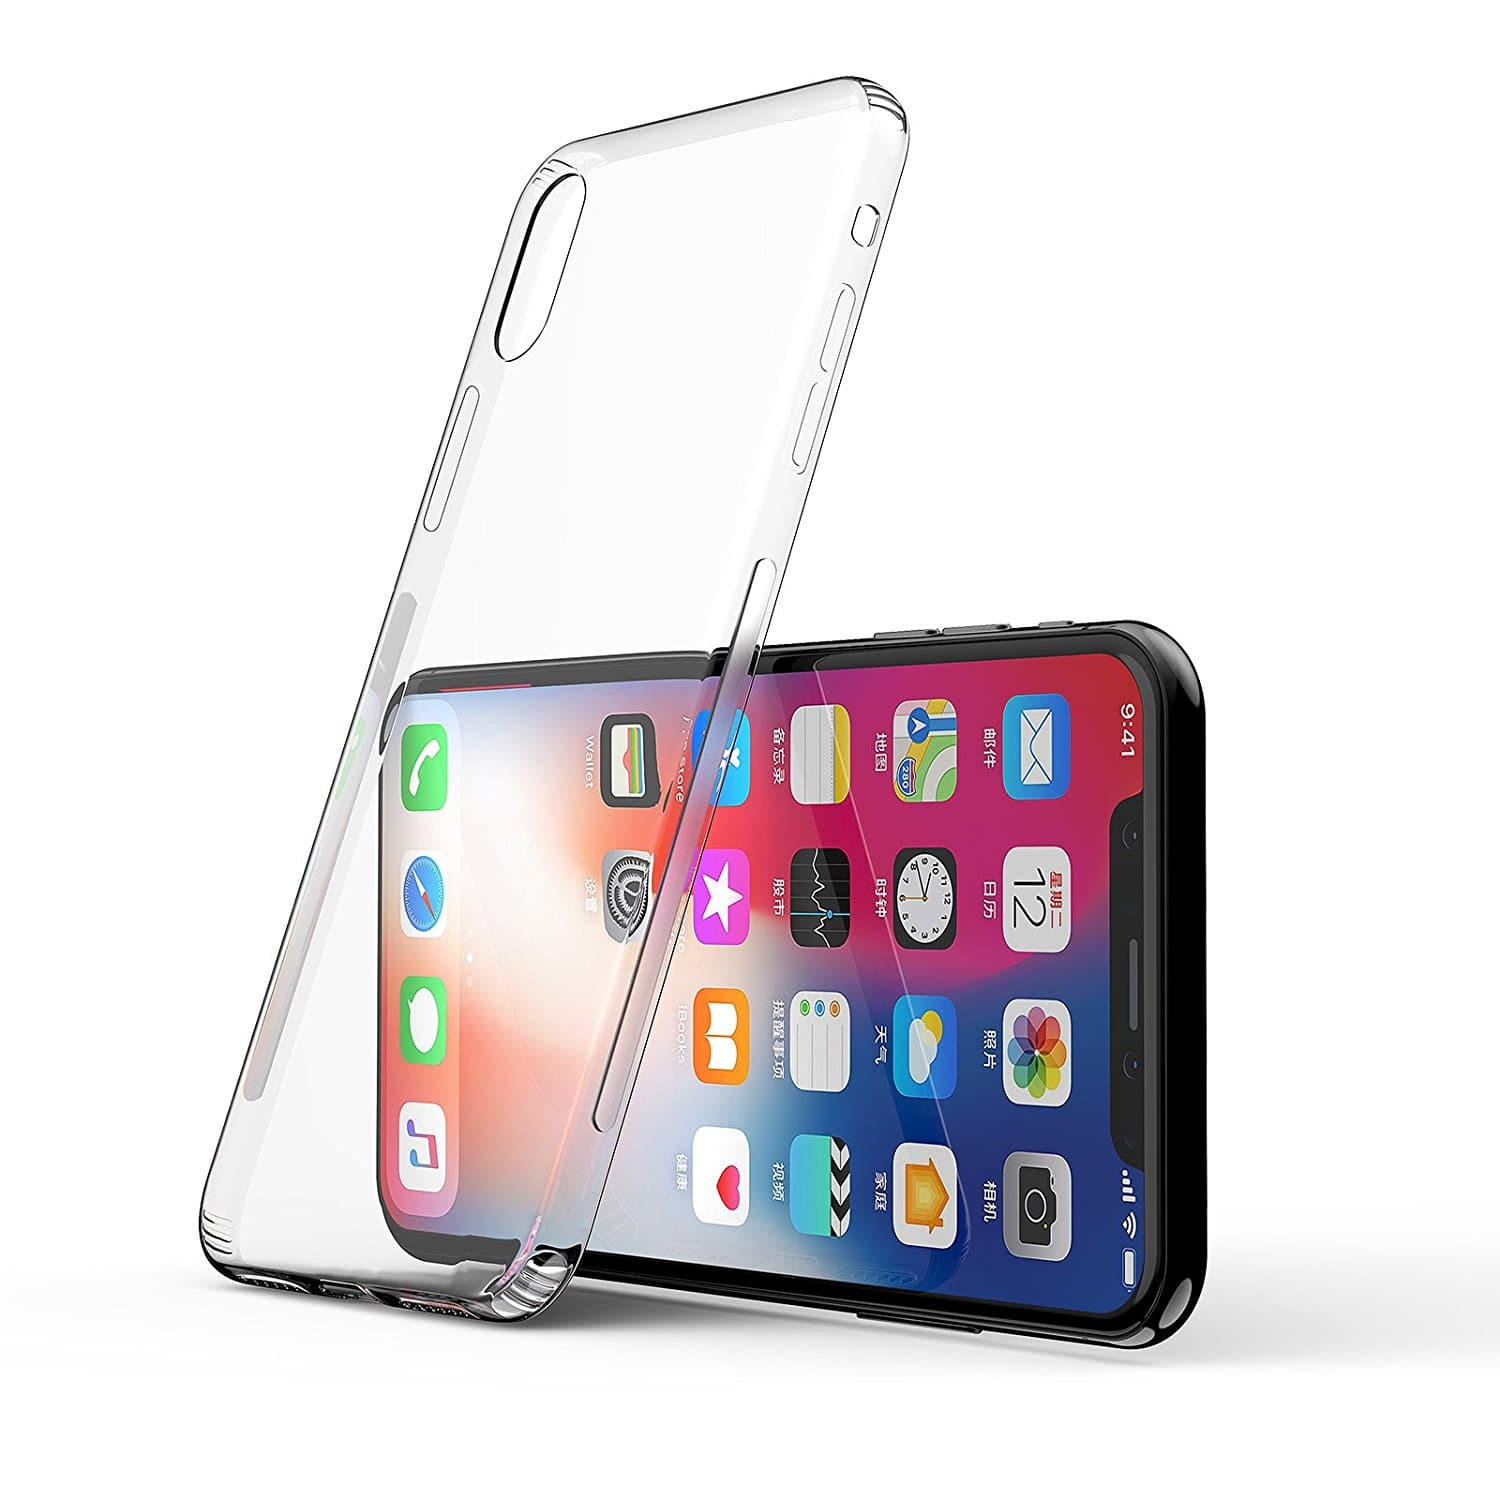 iPhone X Case, GANJOY Apple iPhone X Crystal Clear Shock Absorption Technology Bumper Soft TPU Cover Case for iPhone X - Clear [Clear] $5